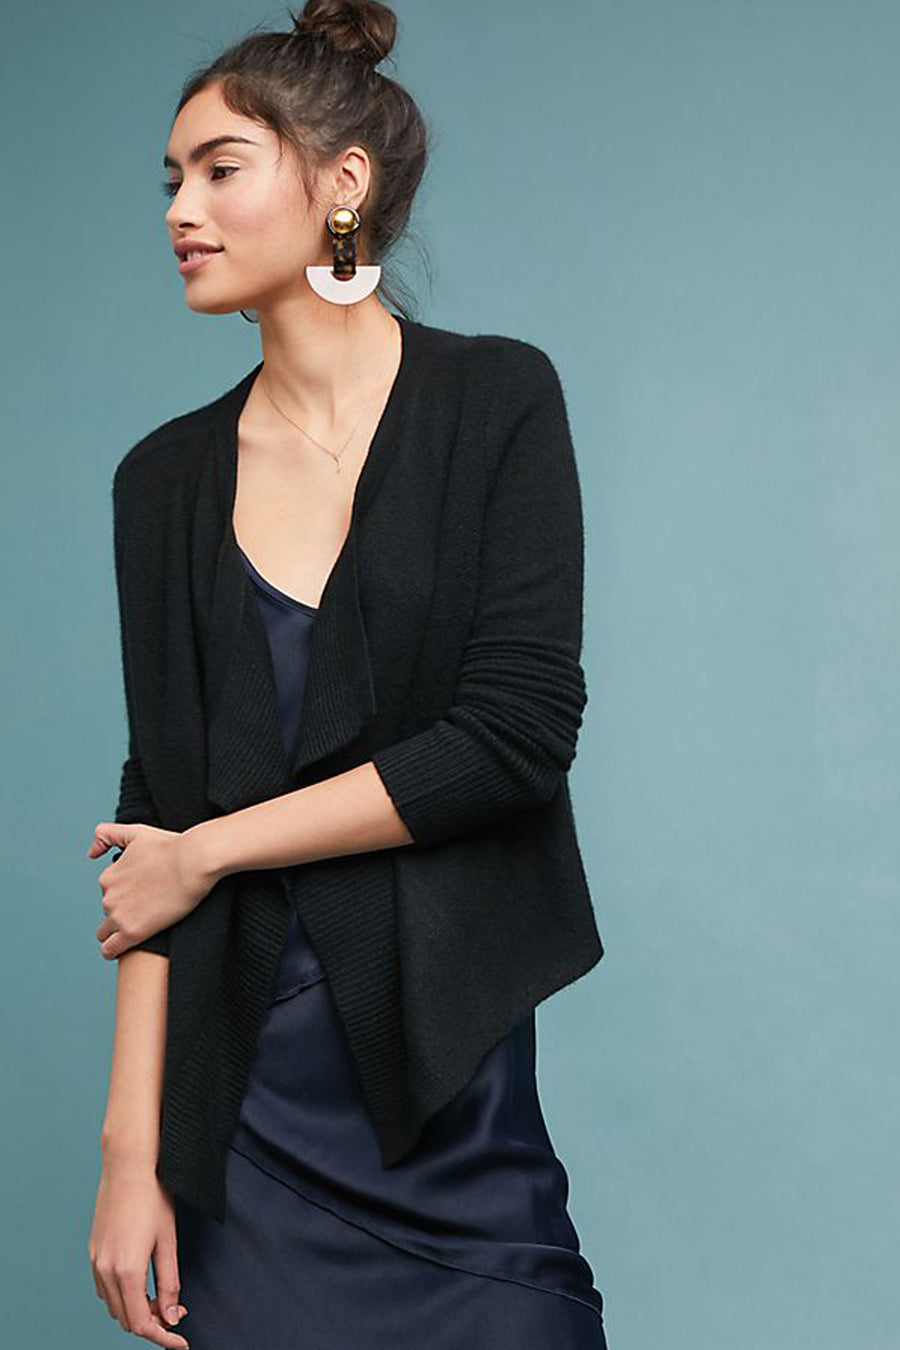 pine cashmere cami women's 100% pure cashmere open draped cardigan in black